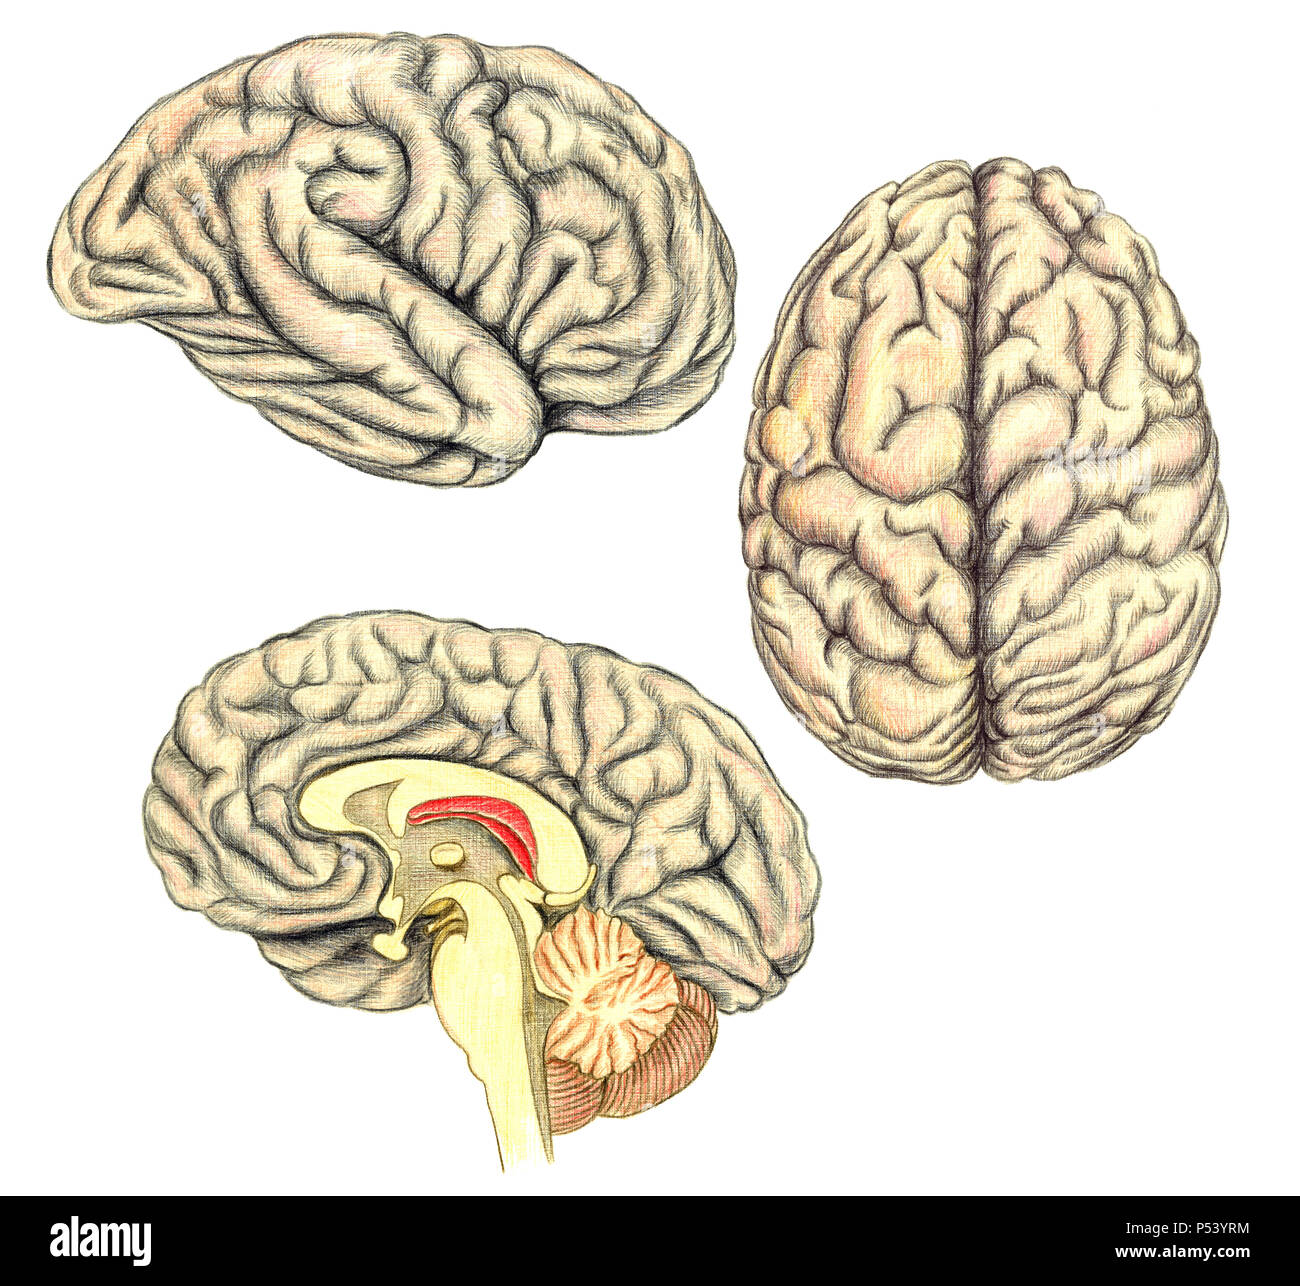 Human brain side diagram stock photos human brain side diagram human brain side view view from above and viewed through a mid line incision ccuart Gallery